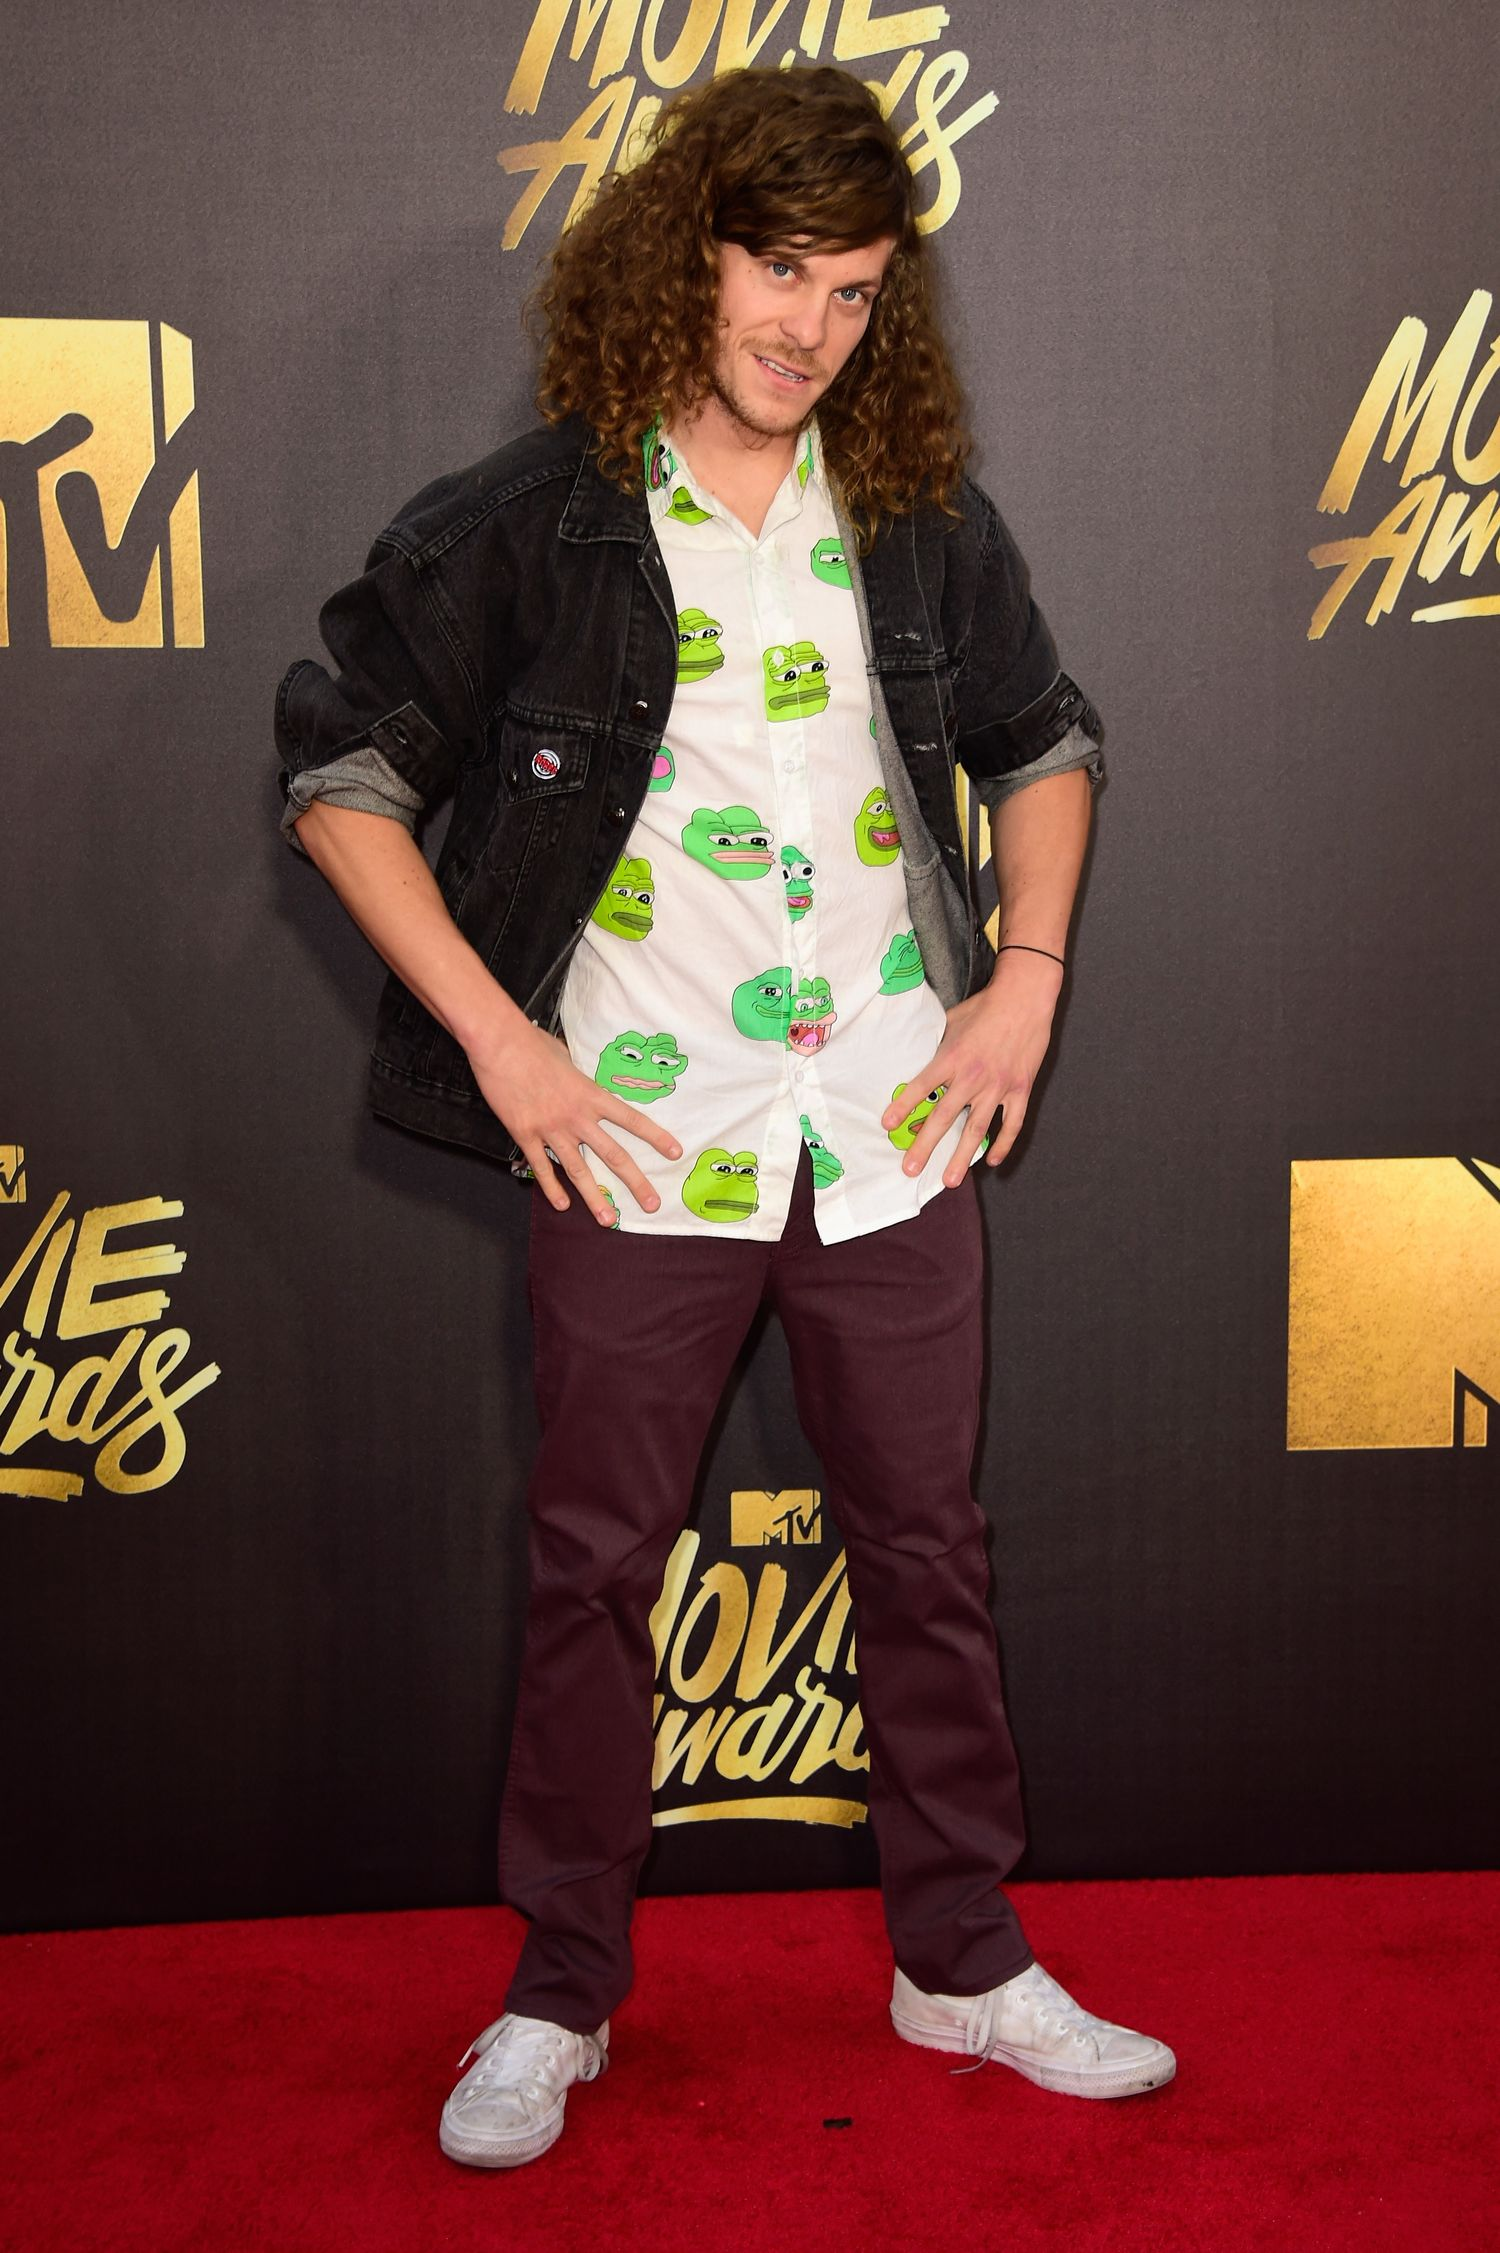 BURBANK, CALIFORNIA - APRIL 09: Actor Blake Anderson attends the 2016 MTV Movie Awards at Warner Bros. Studios on April 9, 2016 in Burbank, California. MTV Movie Awards airs April 10, 2016 at 8pm ET/PT. (Photo by Frazer Harrison/Getty Images)